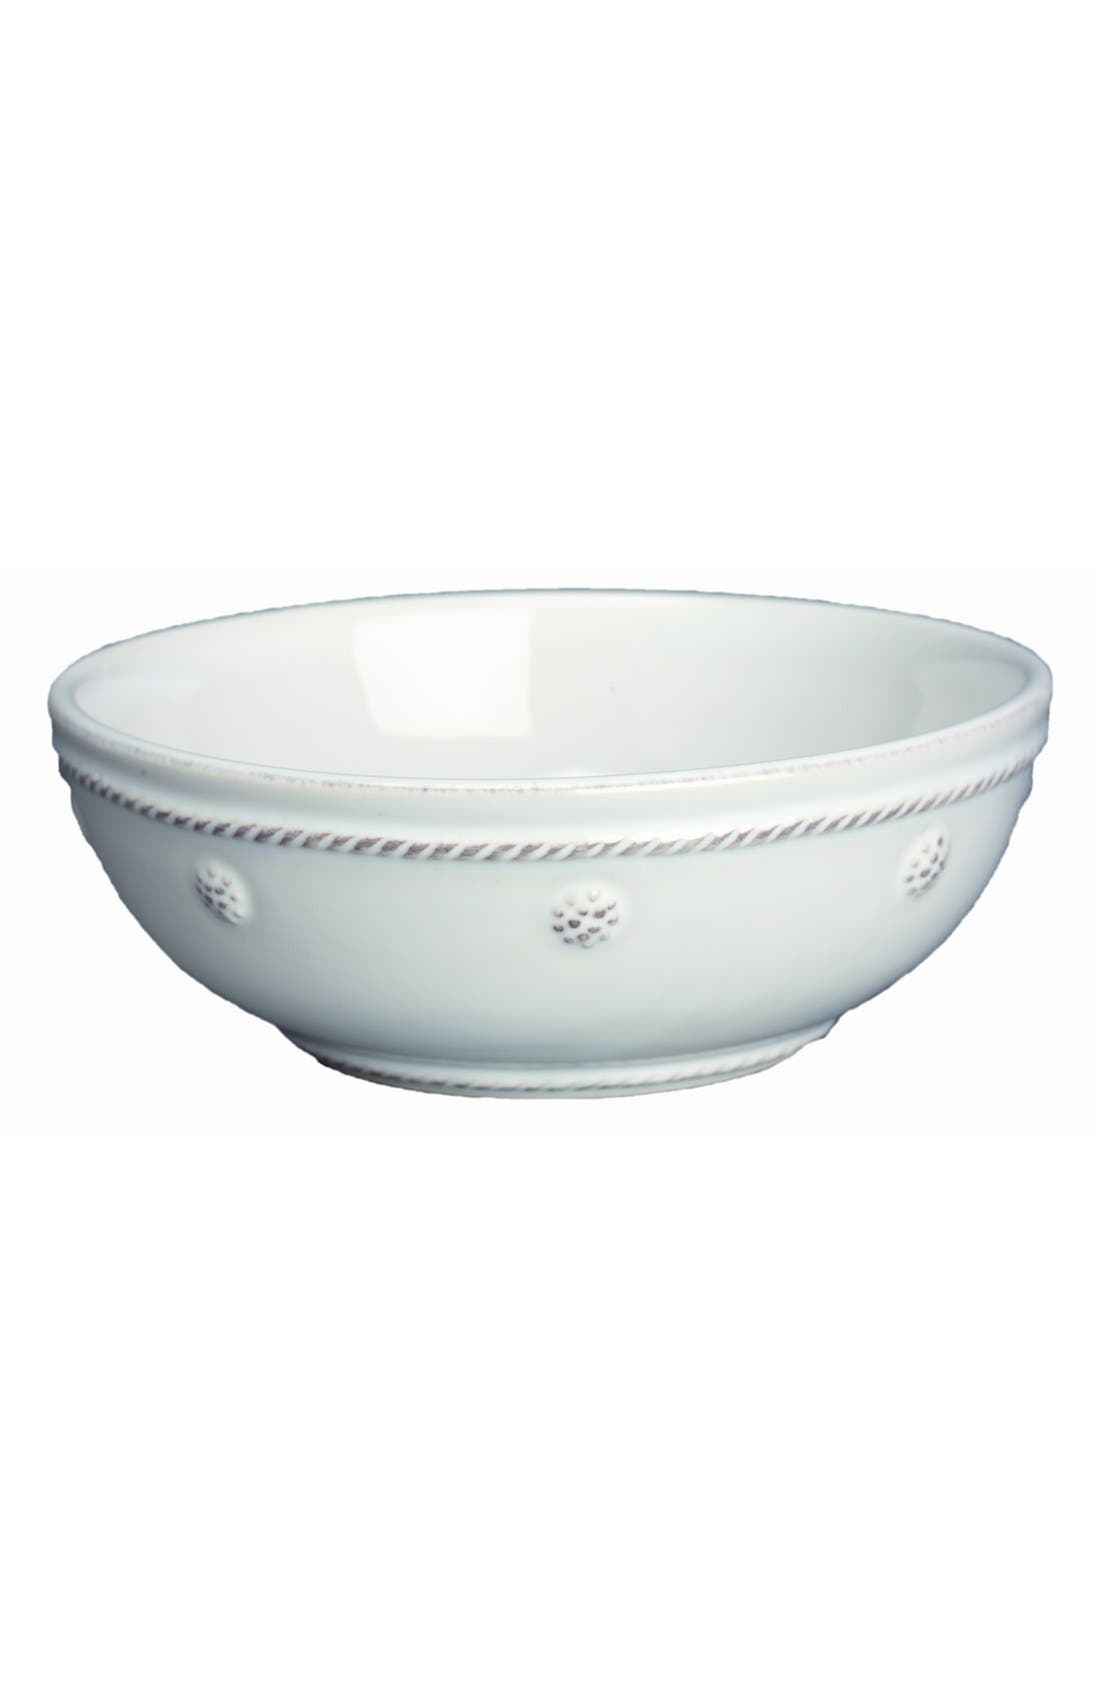 'Berry and Thread' Coupe Bowl,                             Main thumbnail 1, color,                             WHITEWASH